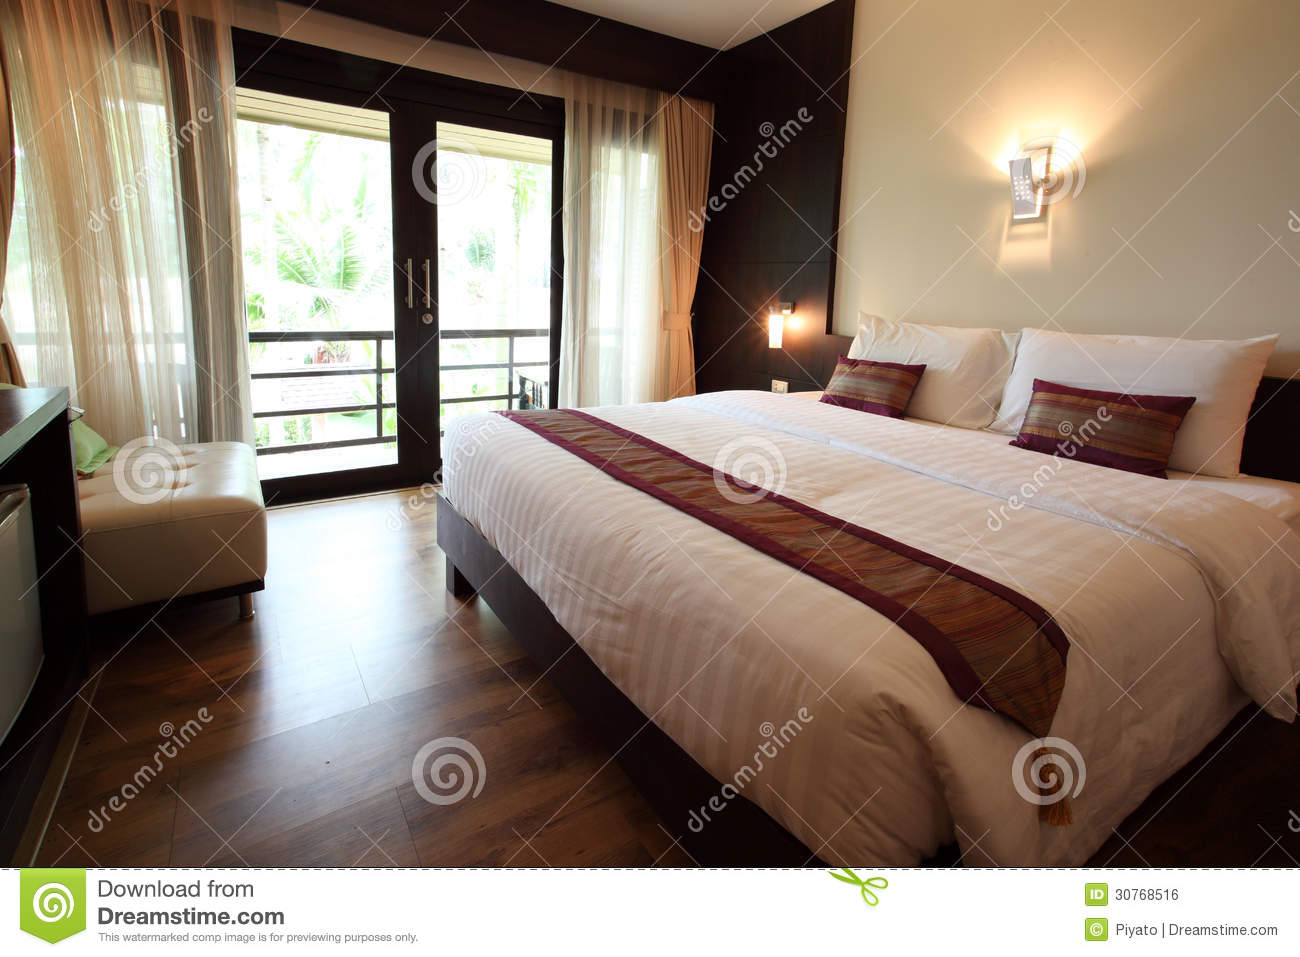 Clean bedroom royalty free stock image image 30768516 for Clean bedroom pictures